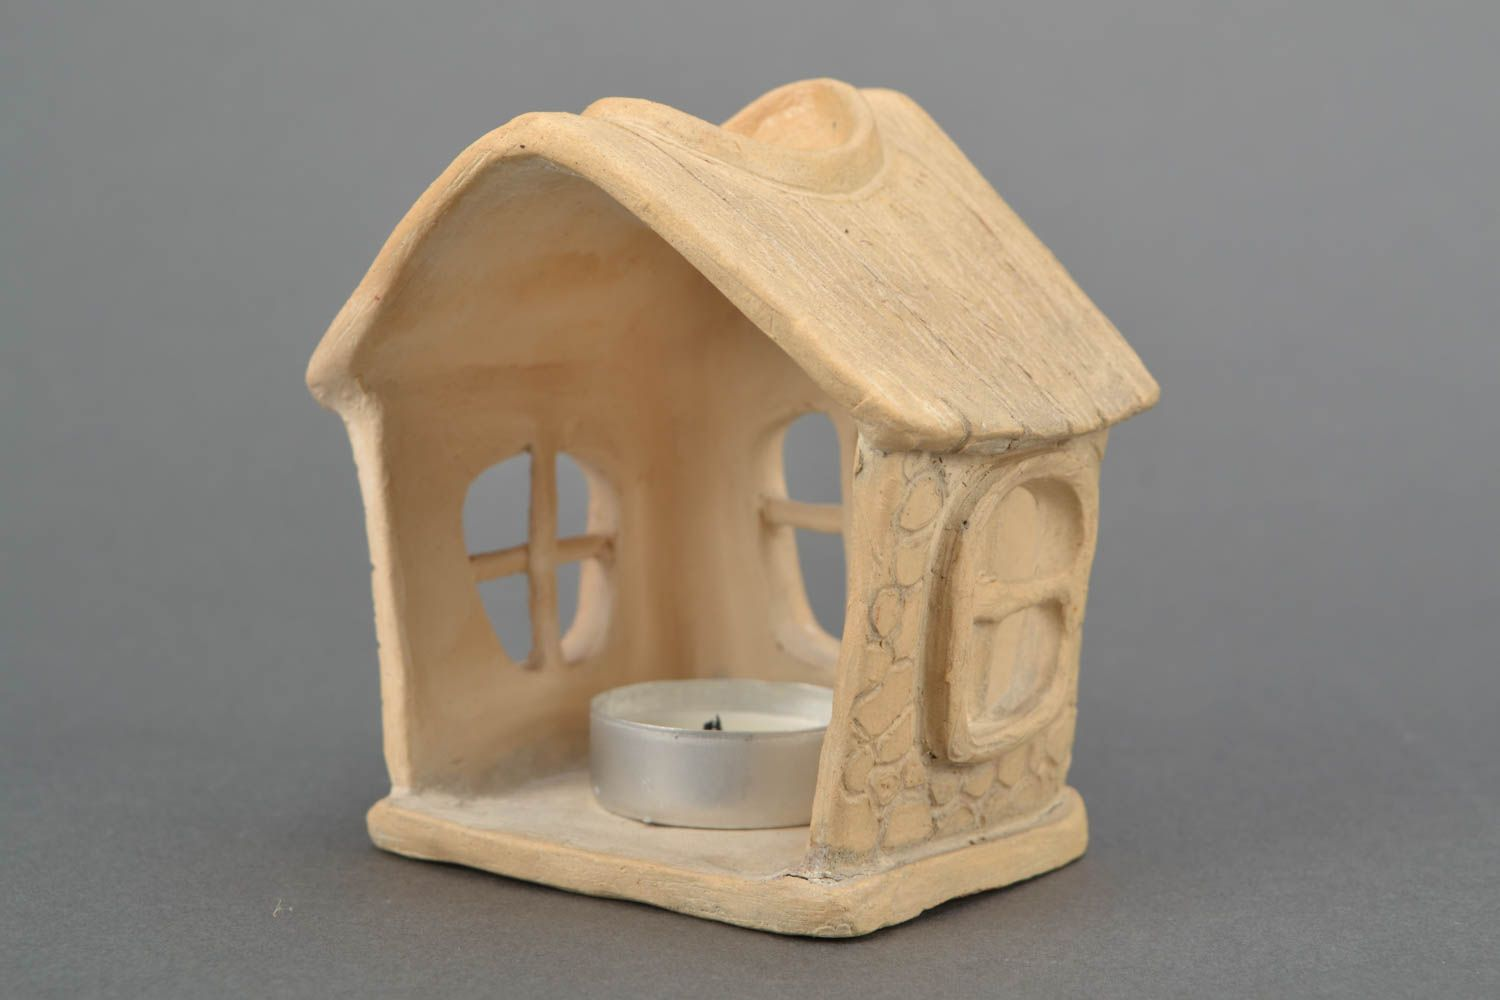 Ceramic aroma lamp House photo 4